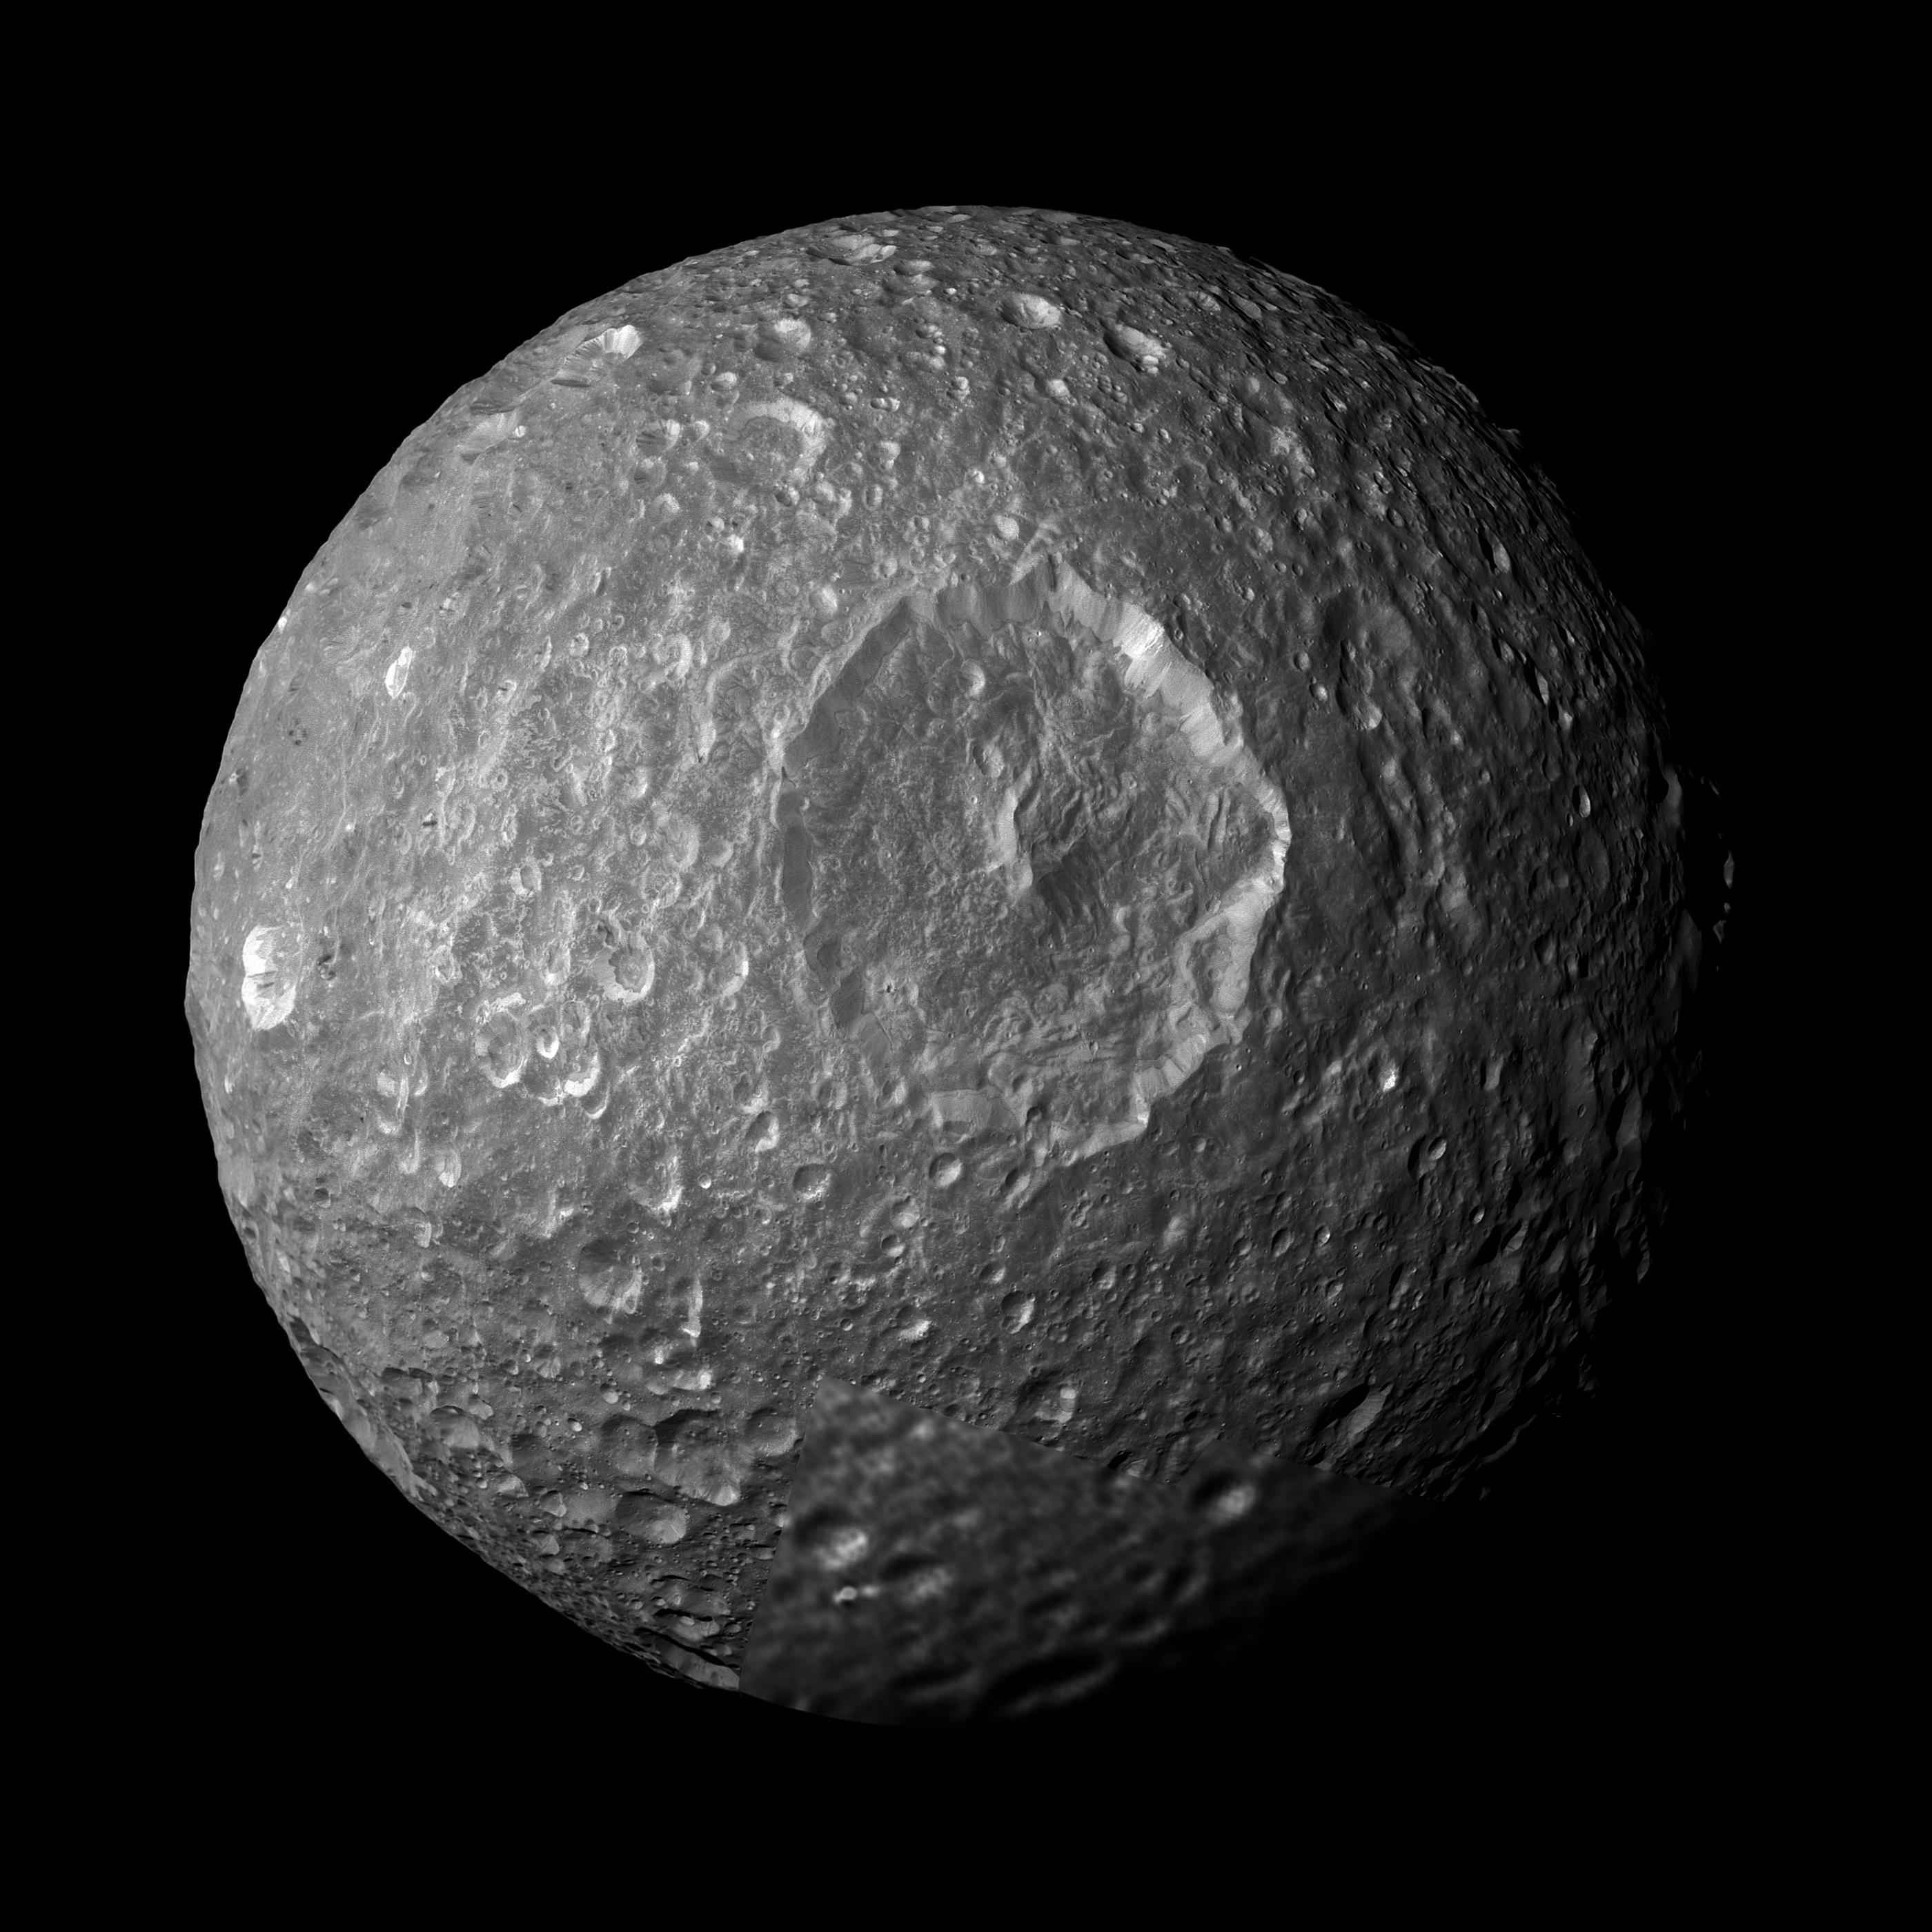 This mosaic, created from images taken by NASA's Cassini spacecraft during its closest flyby of Saturn's moon Mimas on Feb. 13, 2010, looks straight at the moon's Herschel crater and reveals new insights about the moon's surface. Herschel crater gives Mim